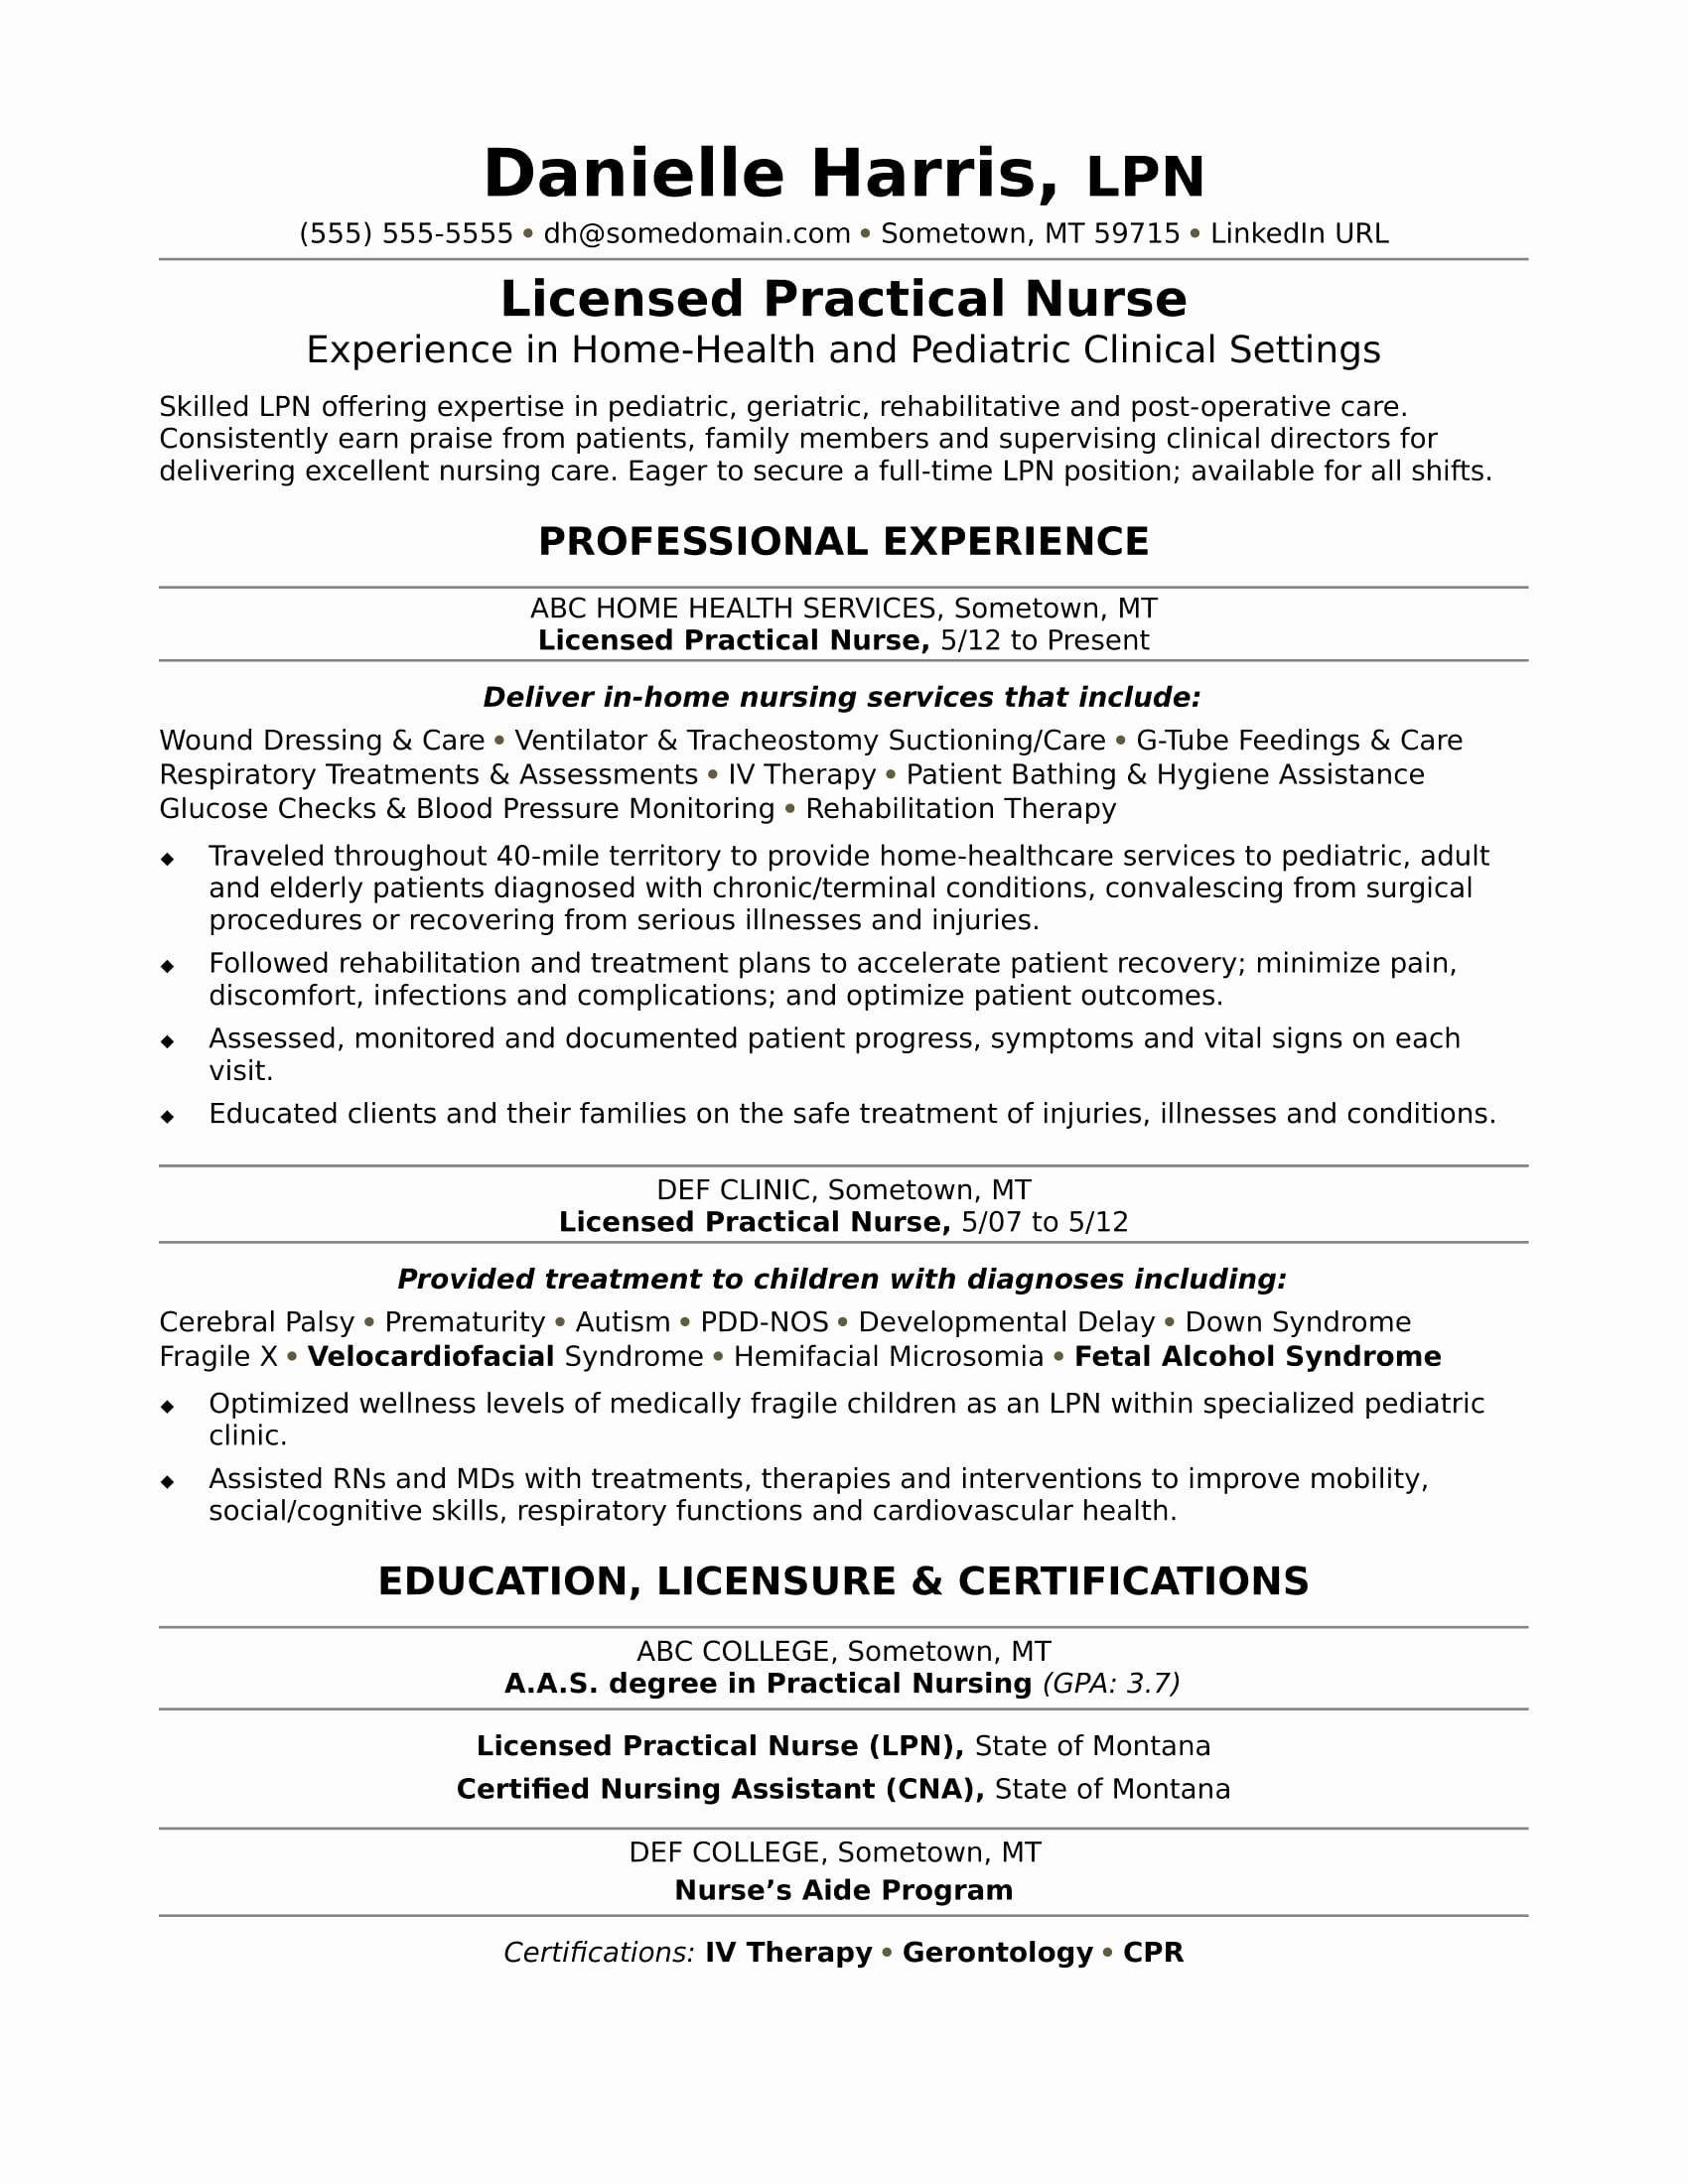 Graduate Nurse Resume Template Free - Free Cv Samples format and Templates Page 332 Of 353